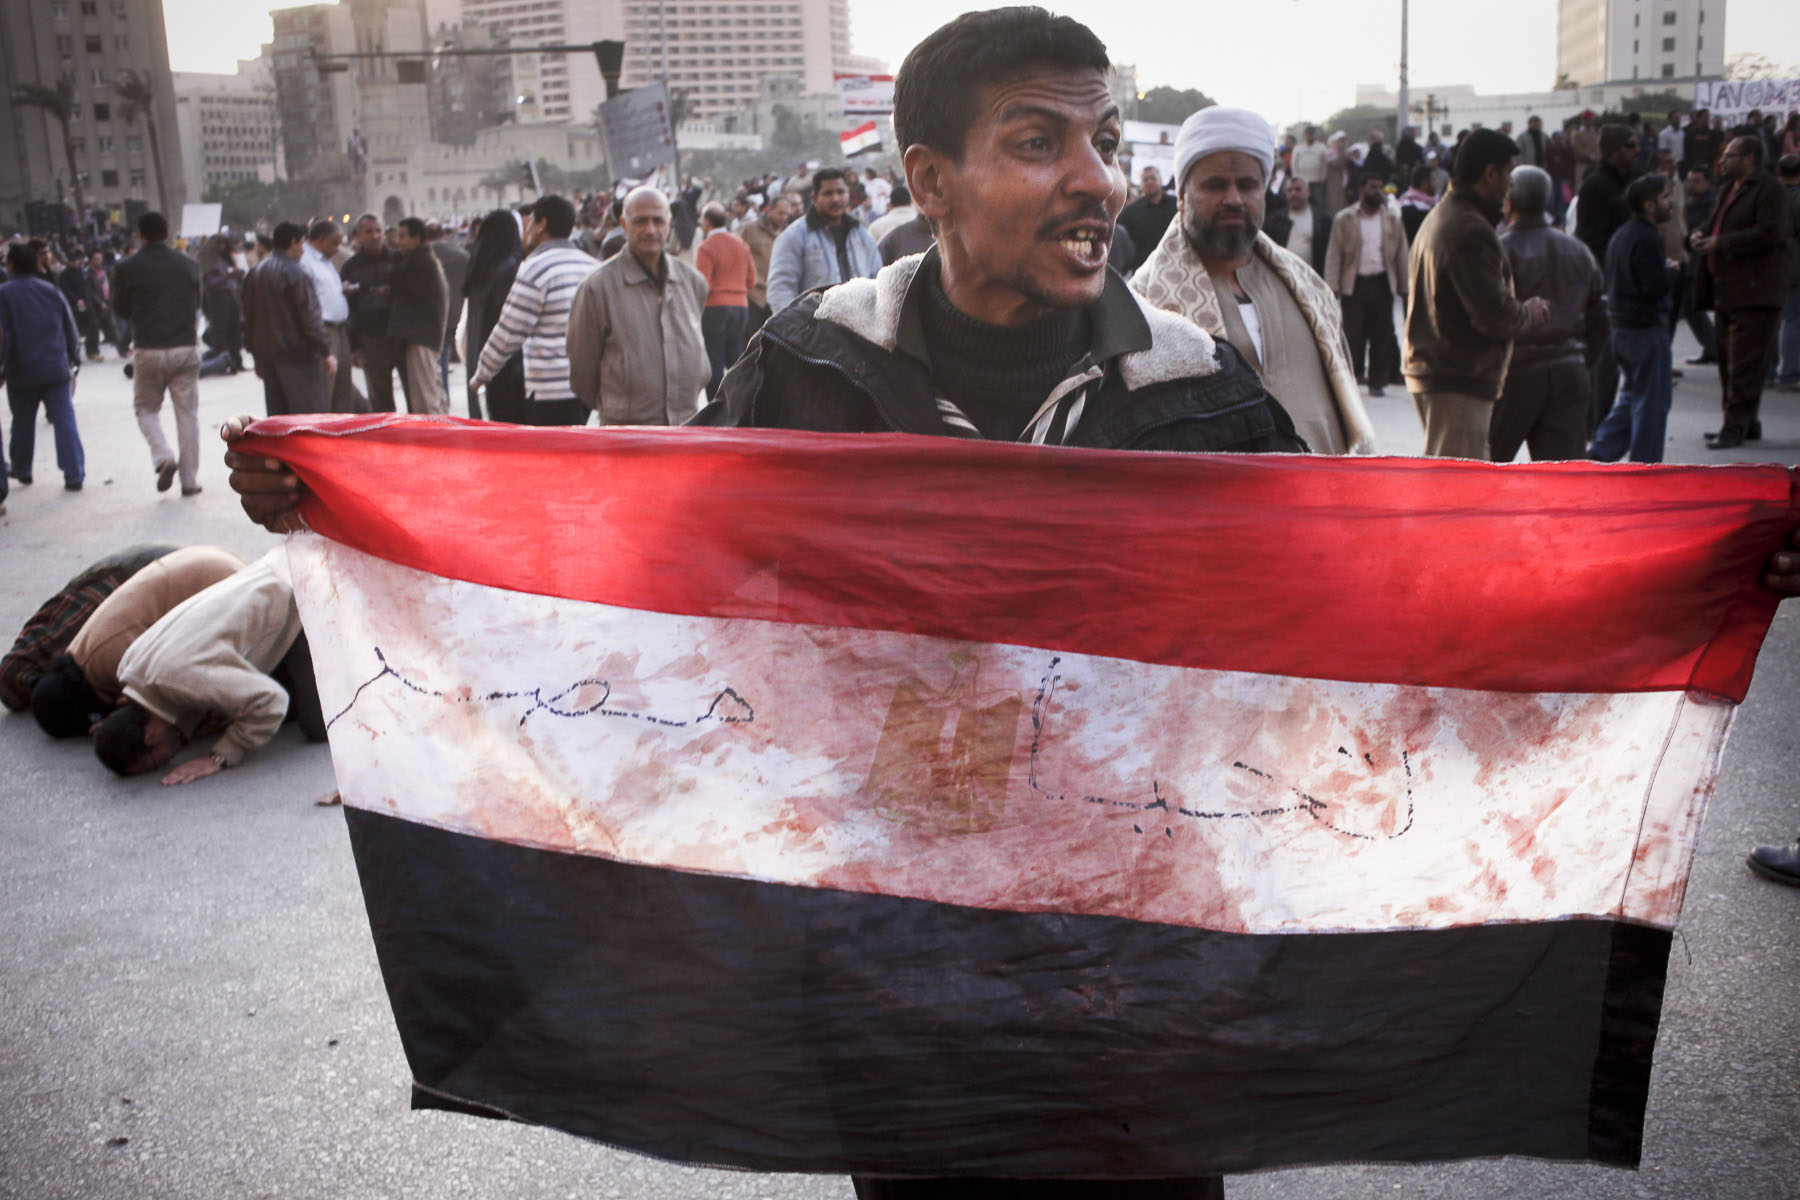 An anti-government demonstrator shows a bloody Egyptian flag during a clash with President Mubarak's supporters on Tahrir Square on Wednesday February 2 2011